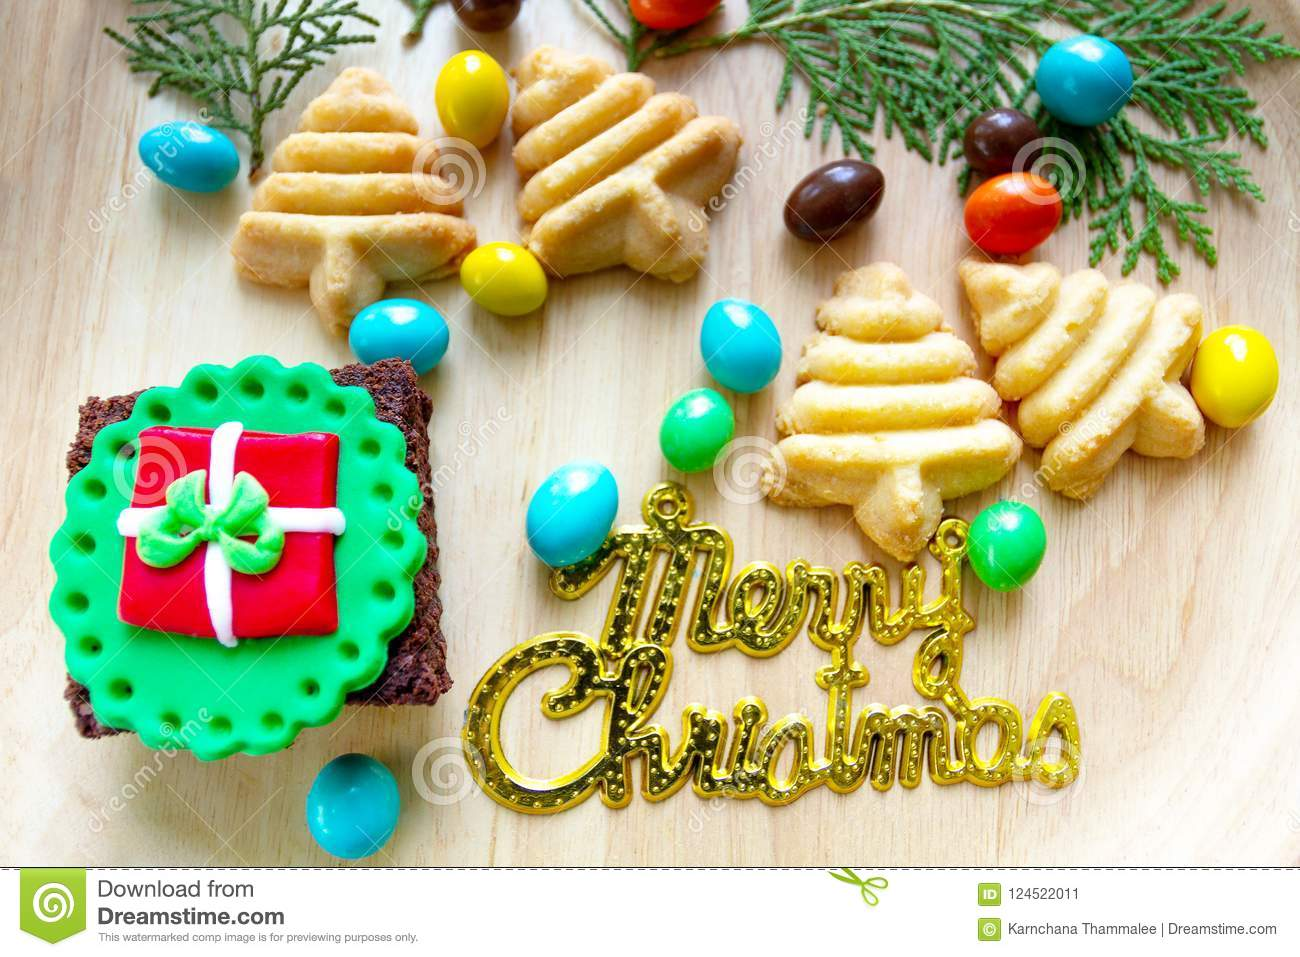 Dessert And Wording With Merry Christmas Stock Image Image Of Food